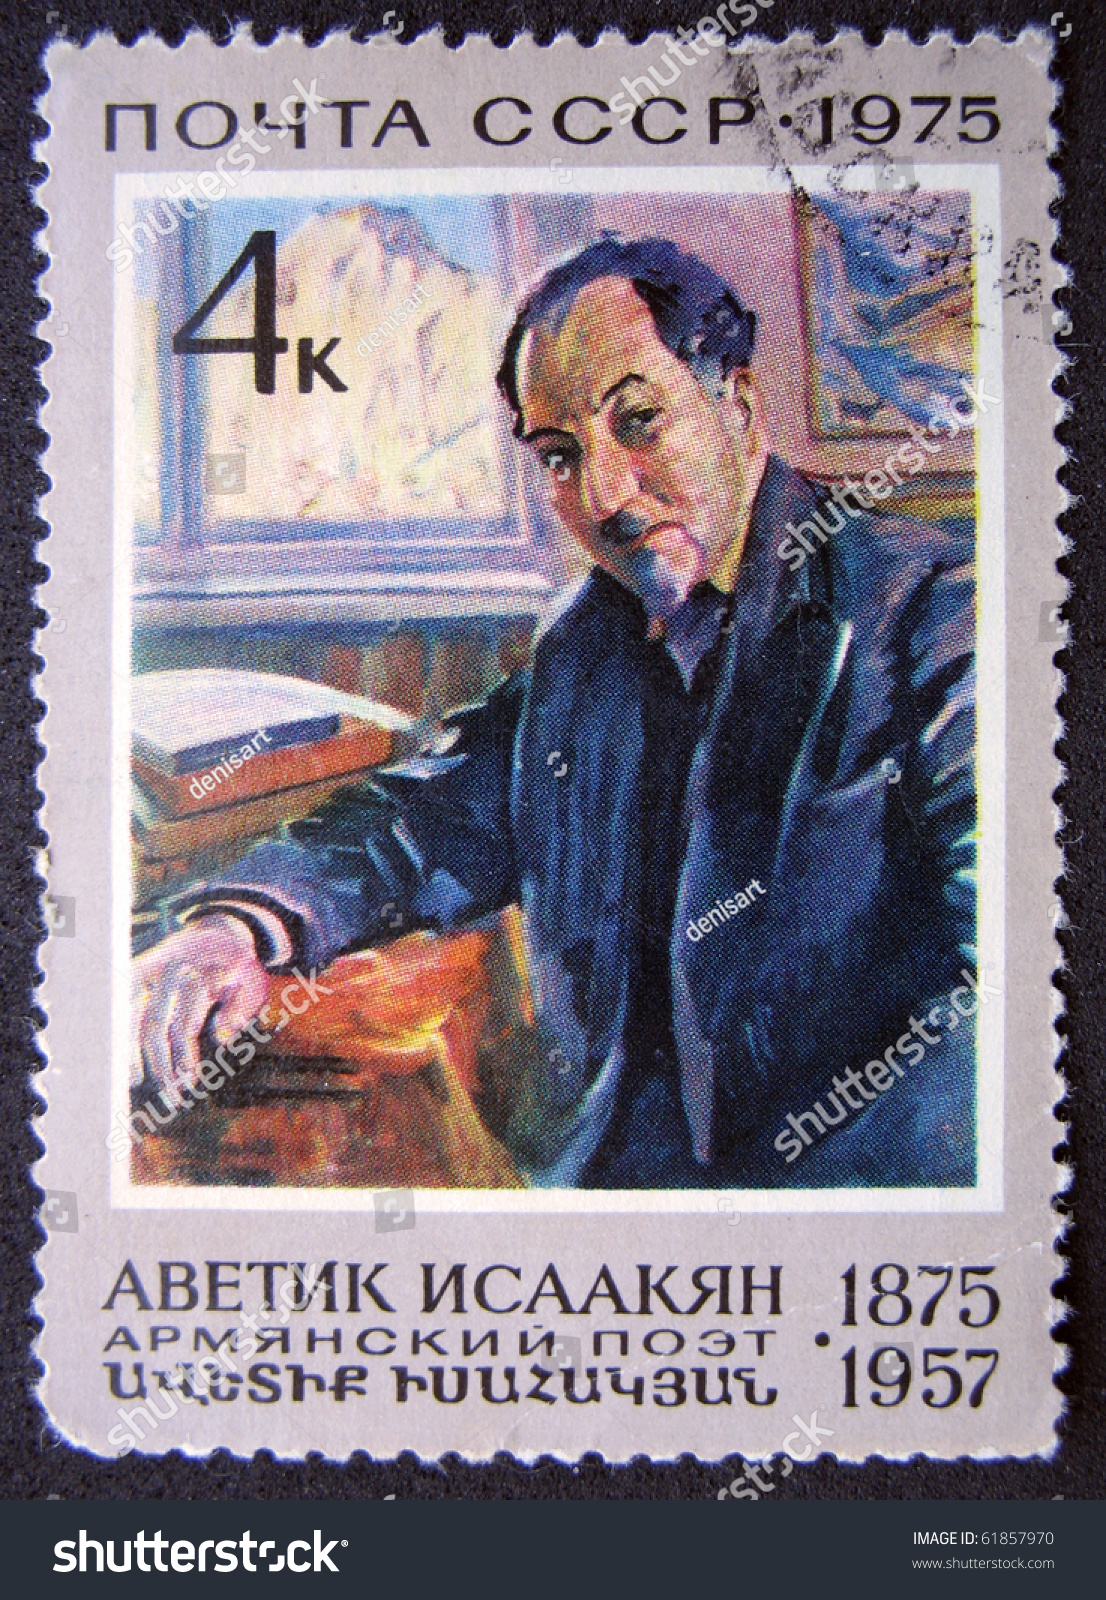 1975 in the USSR 25